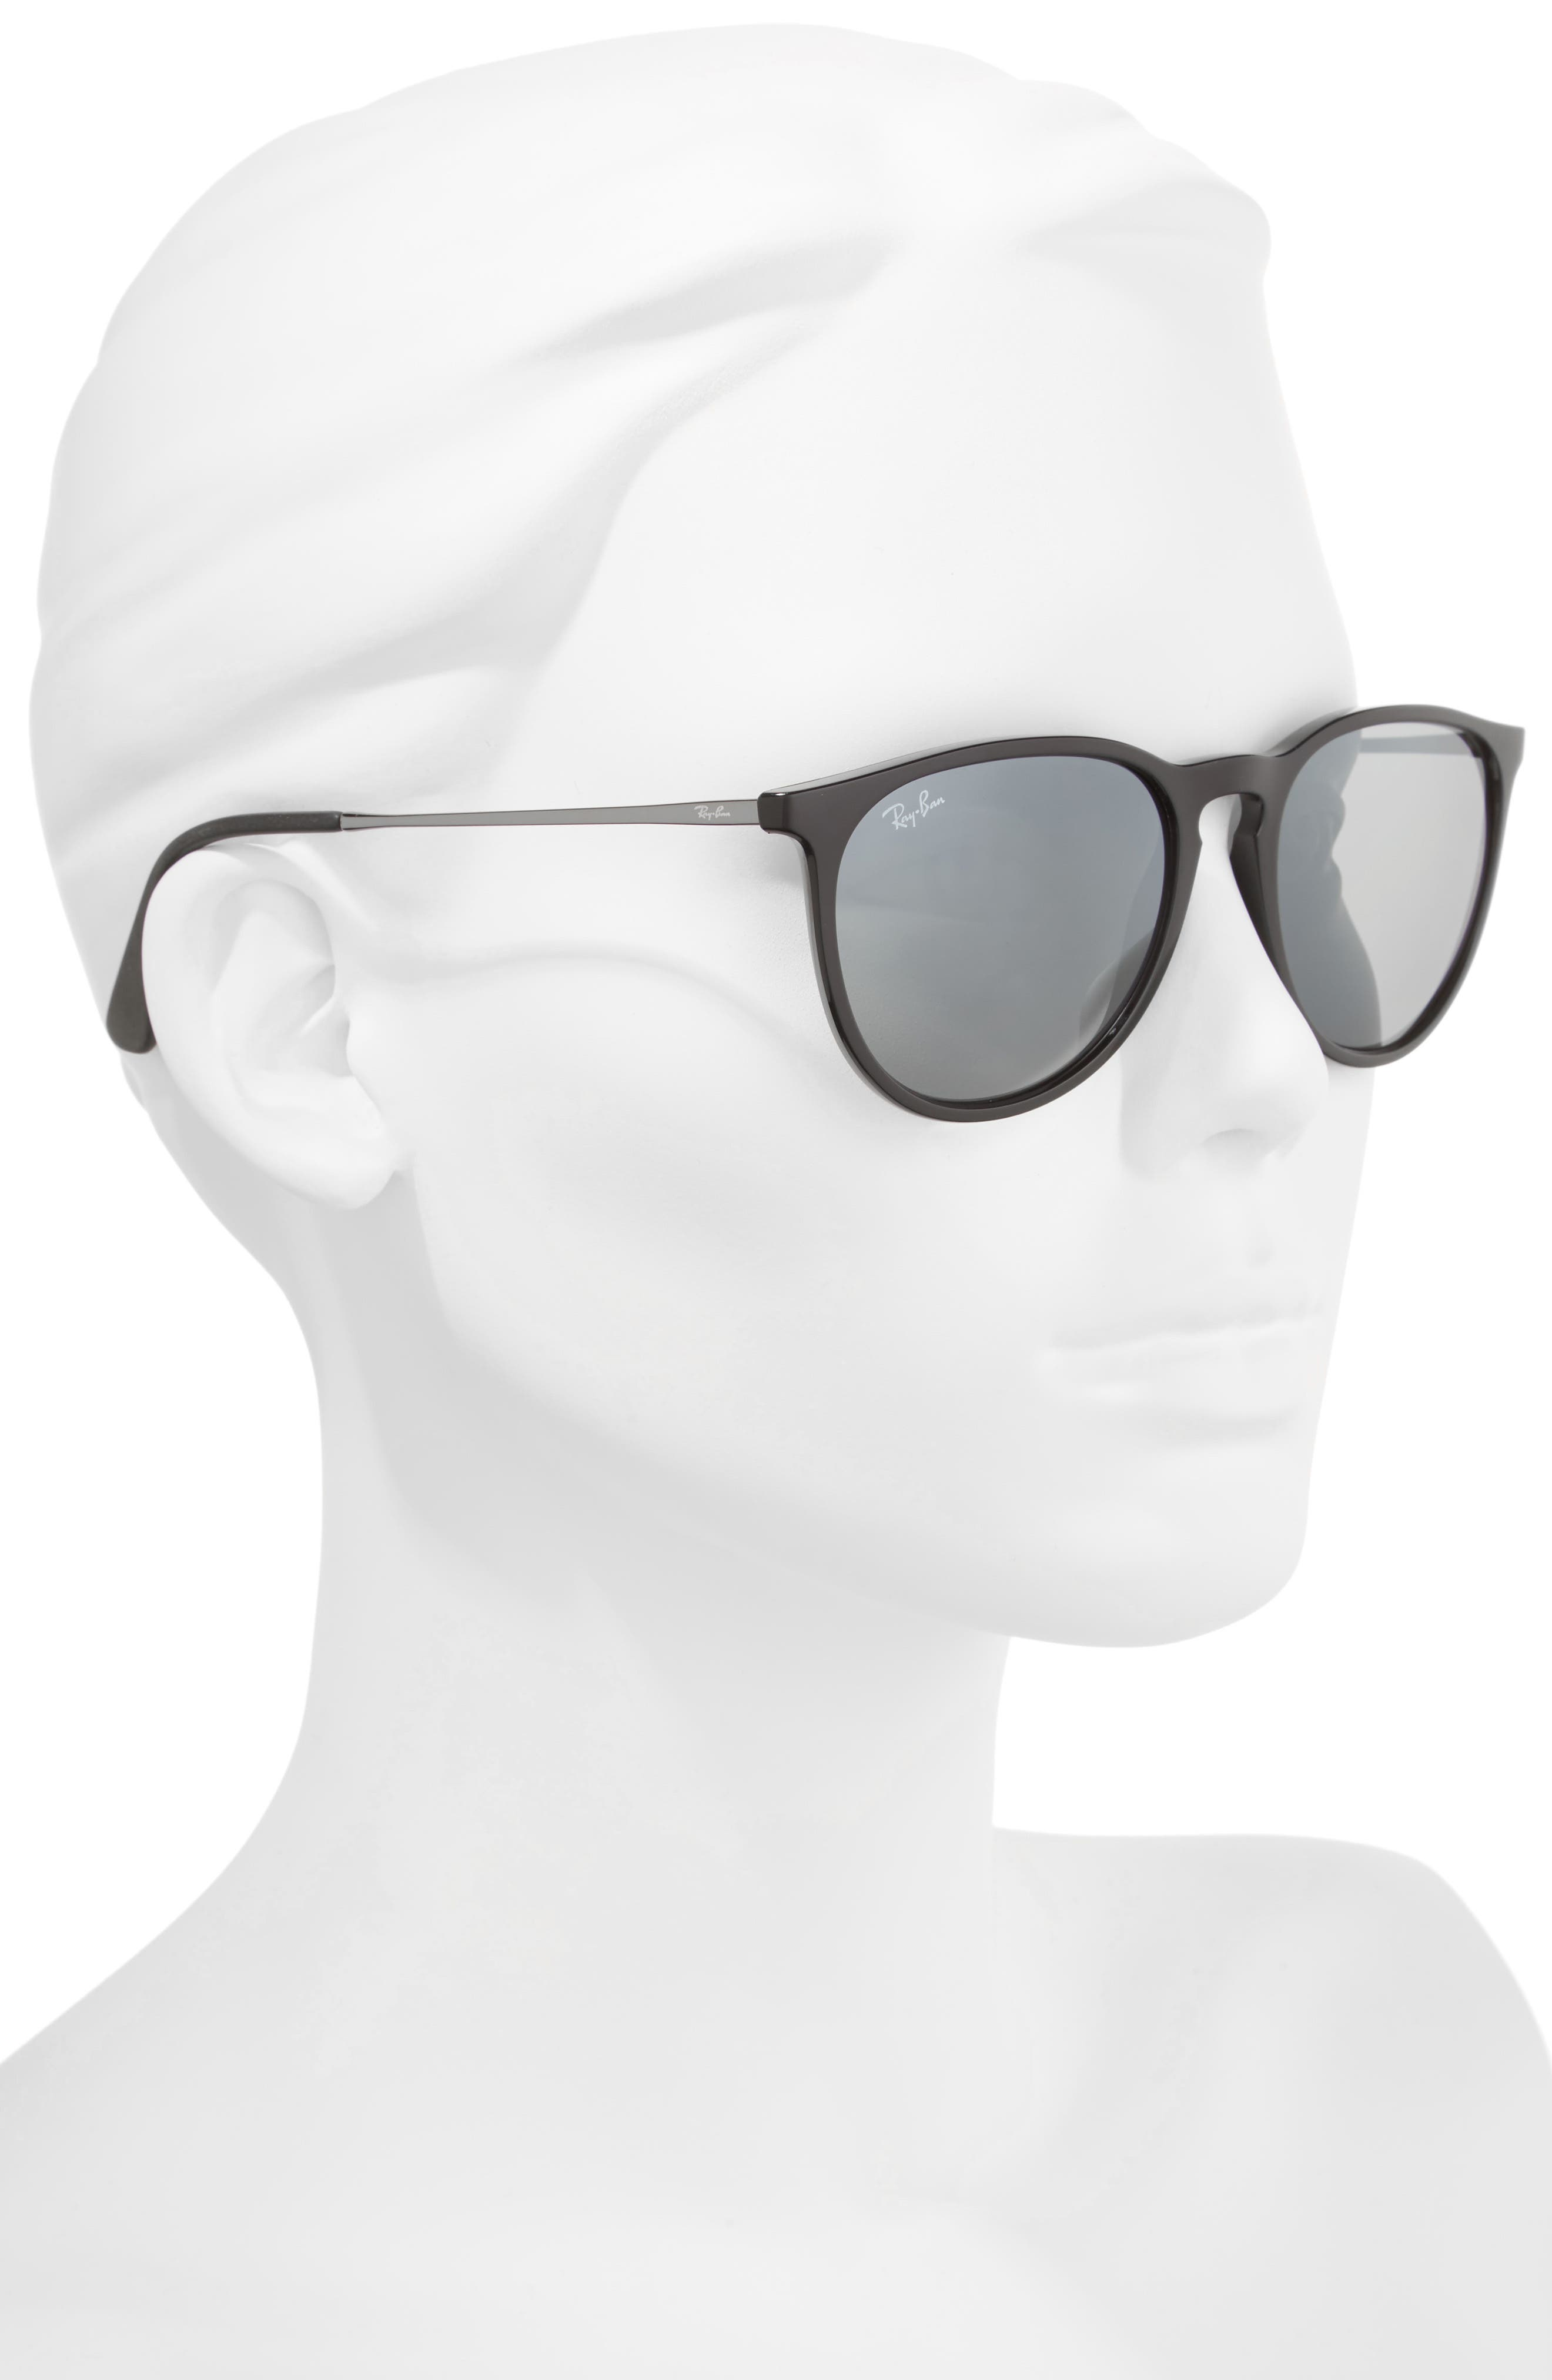 Erika 54mm Mirrored Sunglasses,                             Alternate thumbnail 3, color,